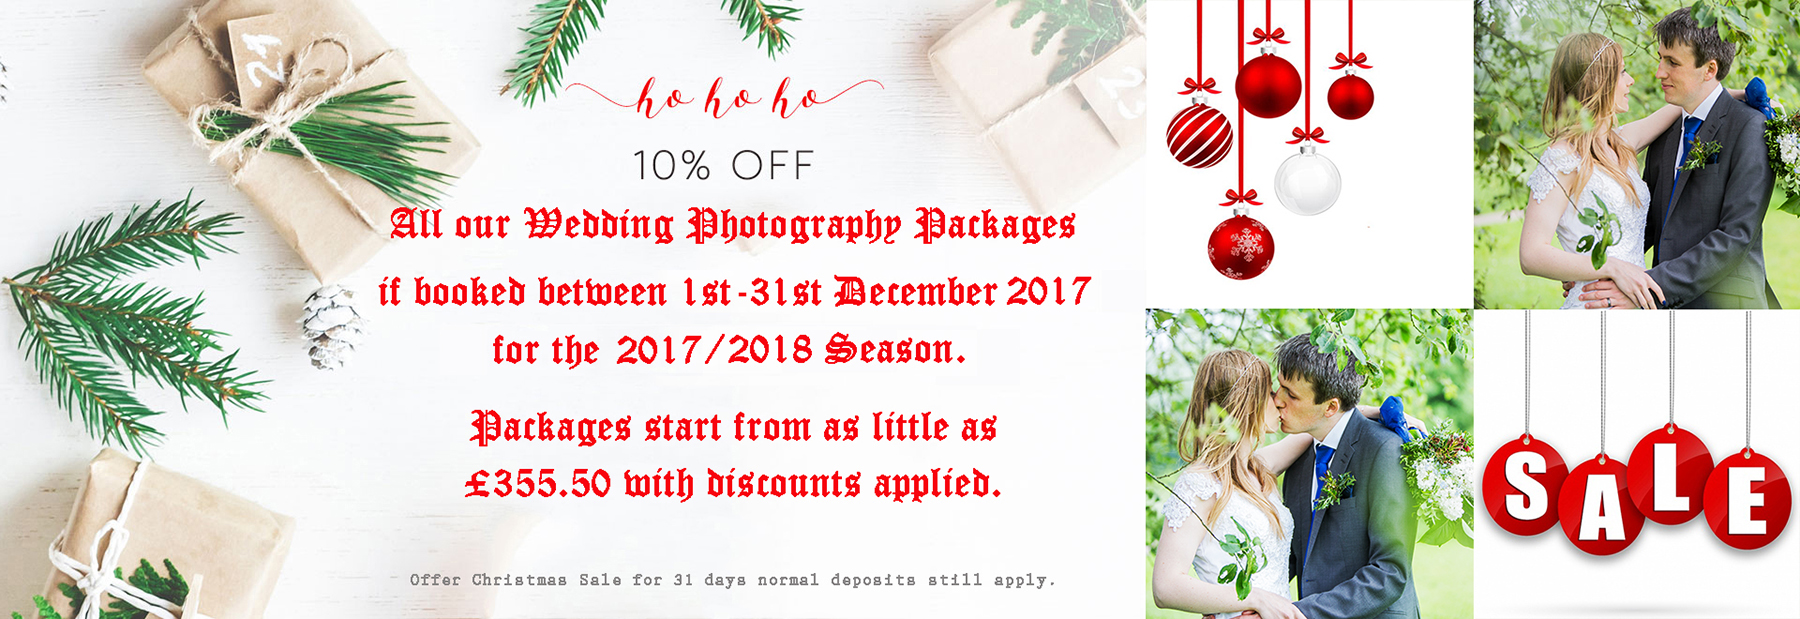 Christmas Add offer 2017